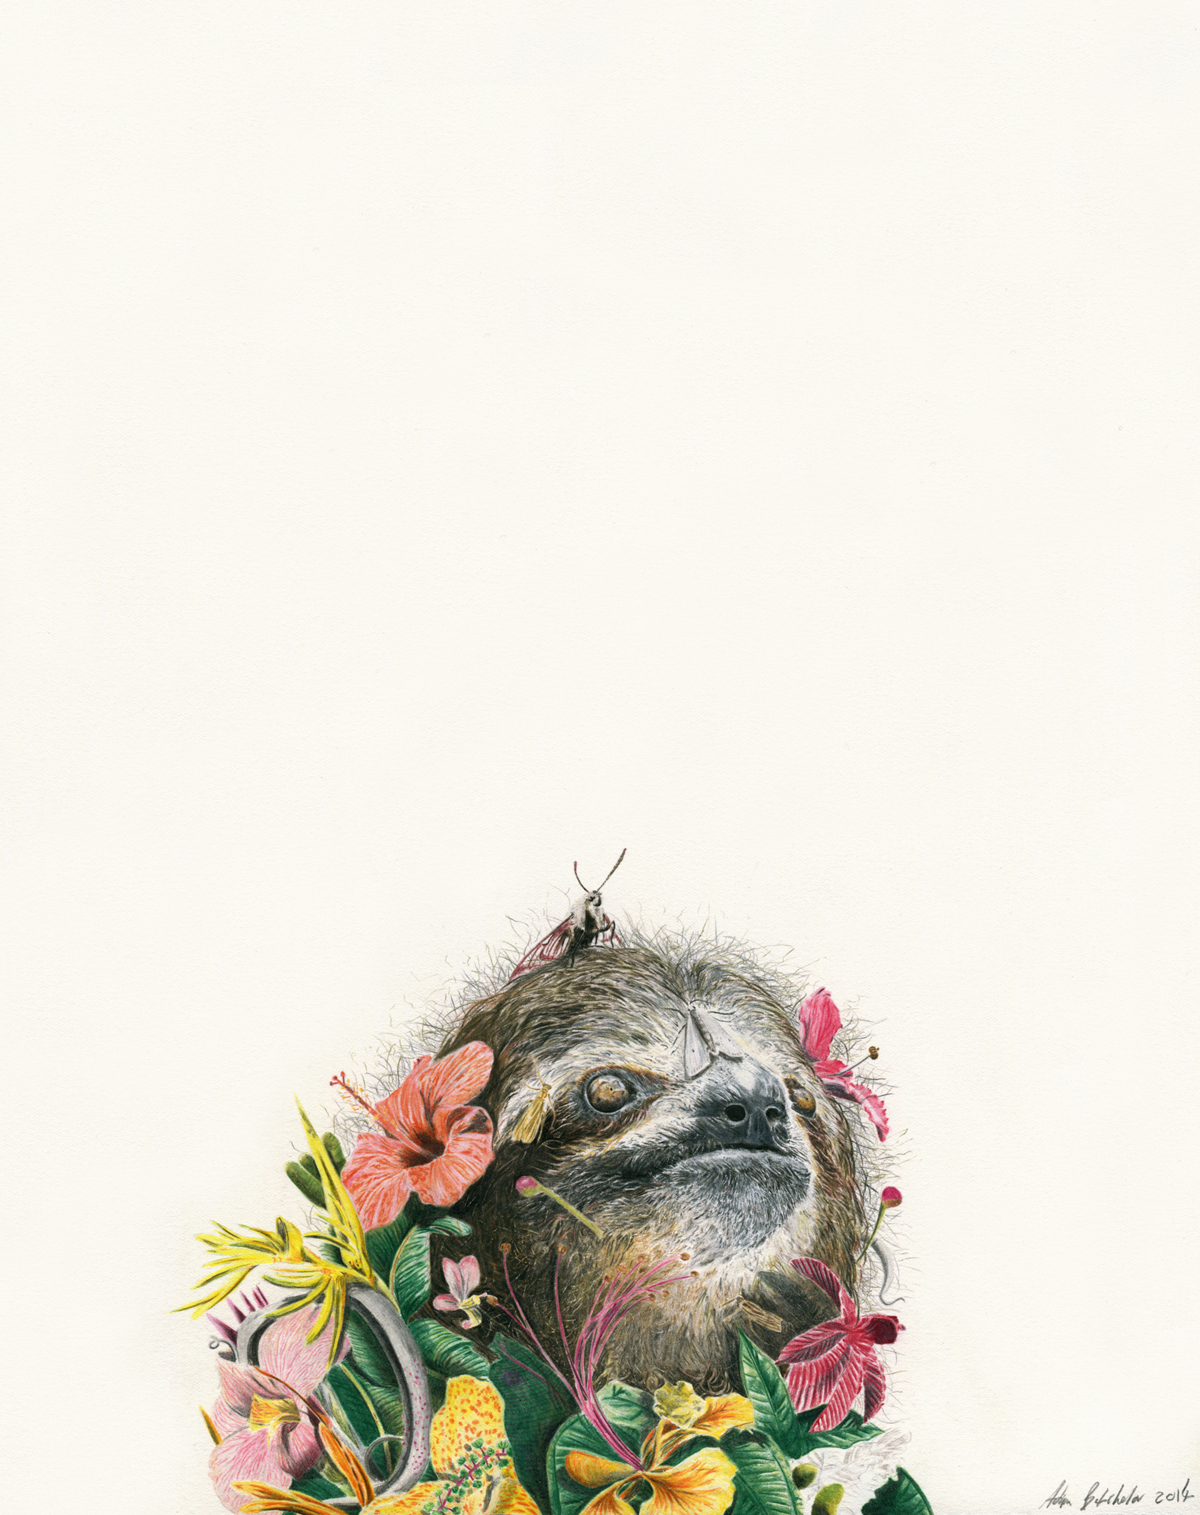 A. Batchelor - What does your flower sloth soul look like?